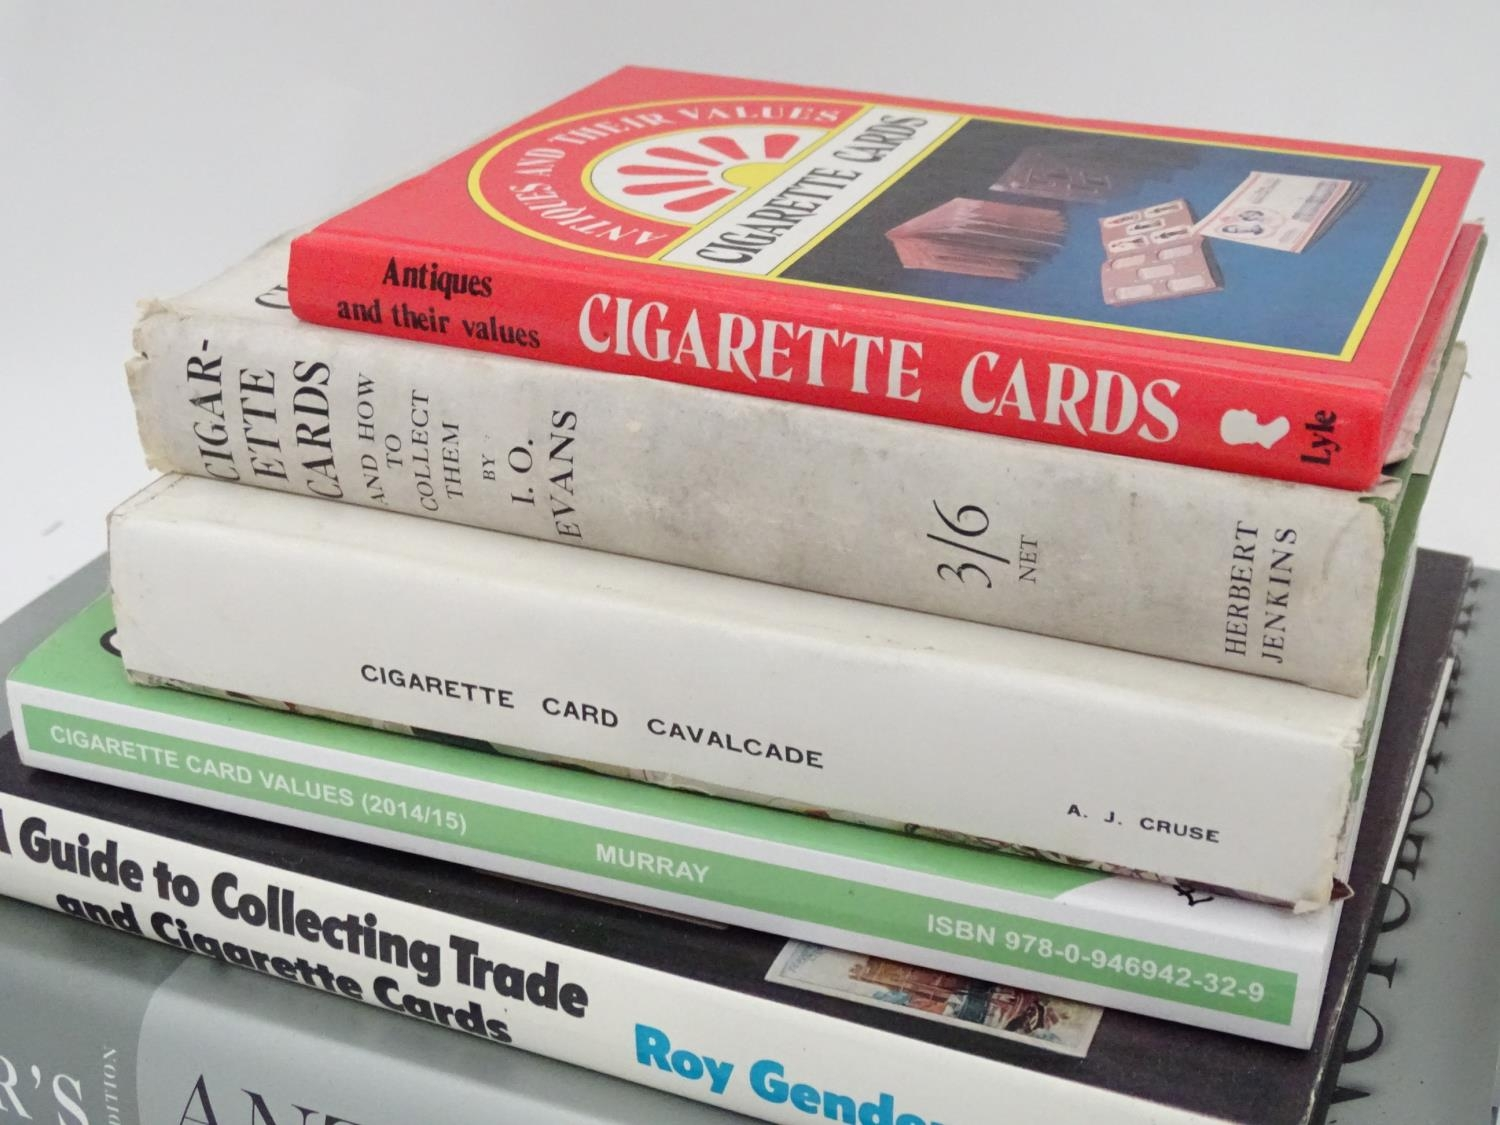 A quantity of assorted books to include Cigarette Trade Card Collecting, A Guide to War Publications - Image 4 of 6